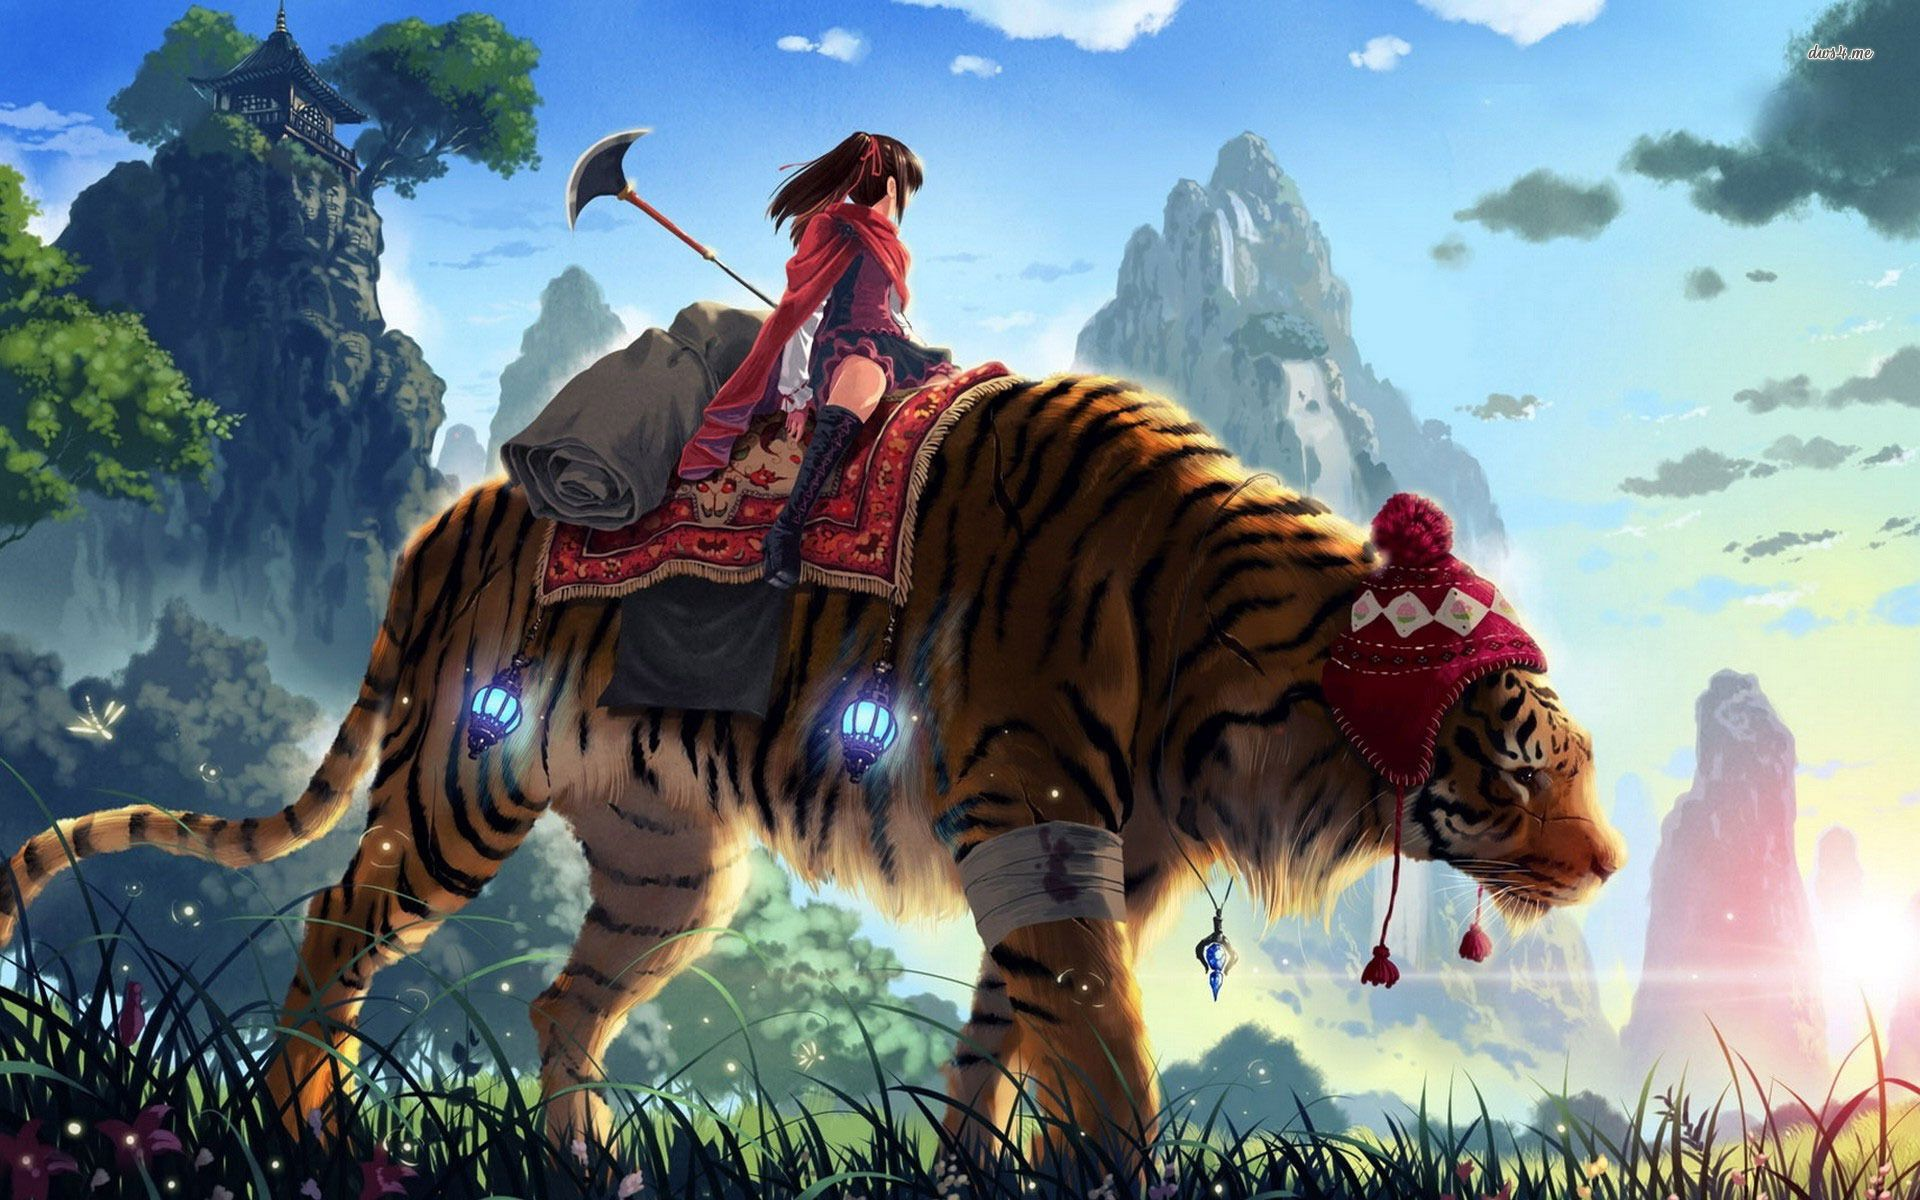 Wallpapers Giant Gril Girl Riding A Tiger Fantasy 1920x1200 Hd Anime Wallpapers Tiger Wallpaper Anime Wallpaper